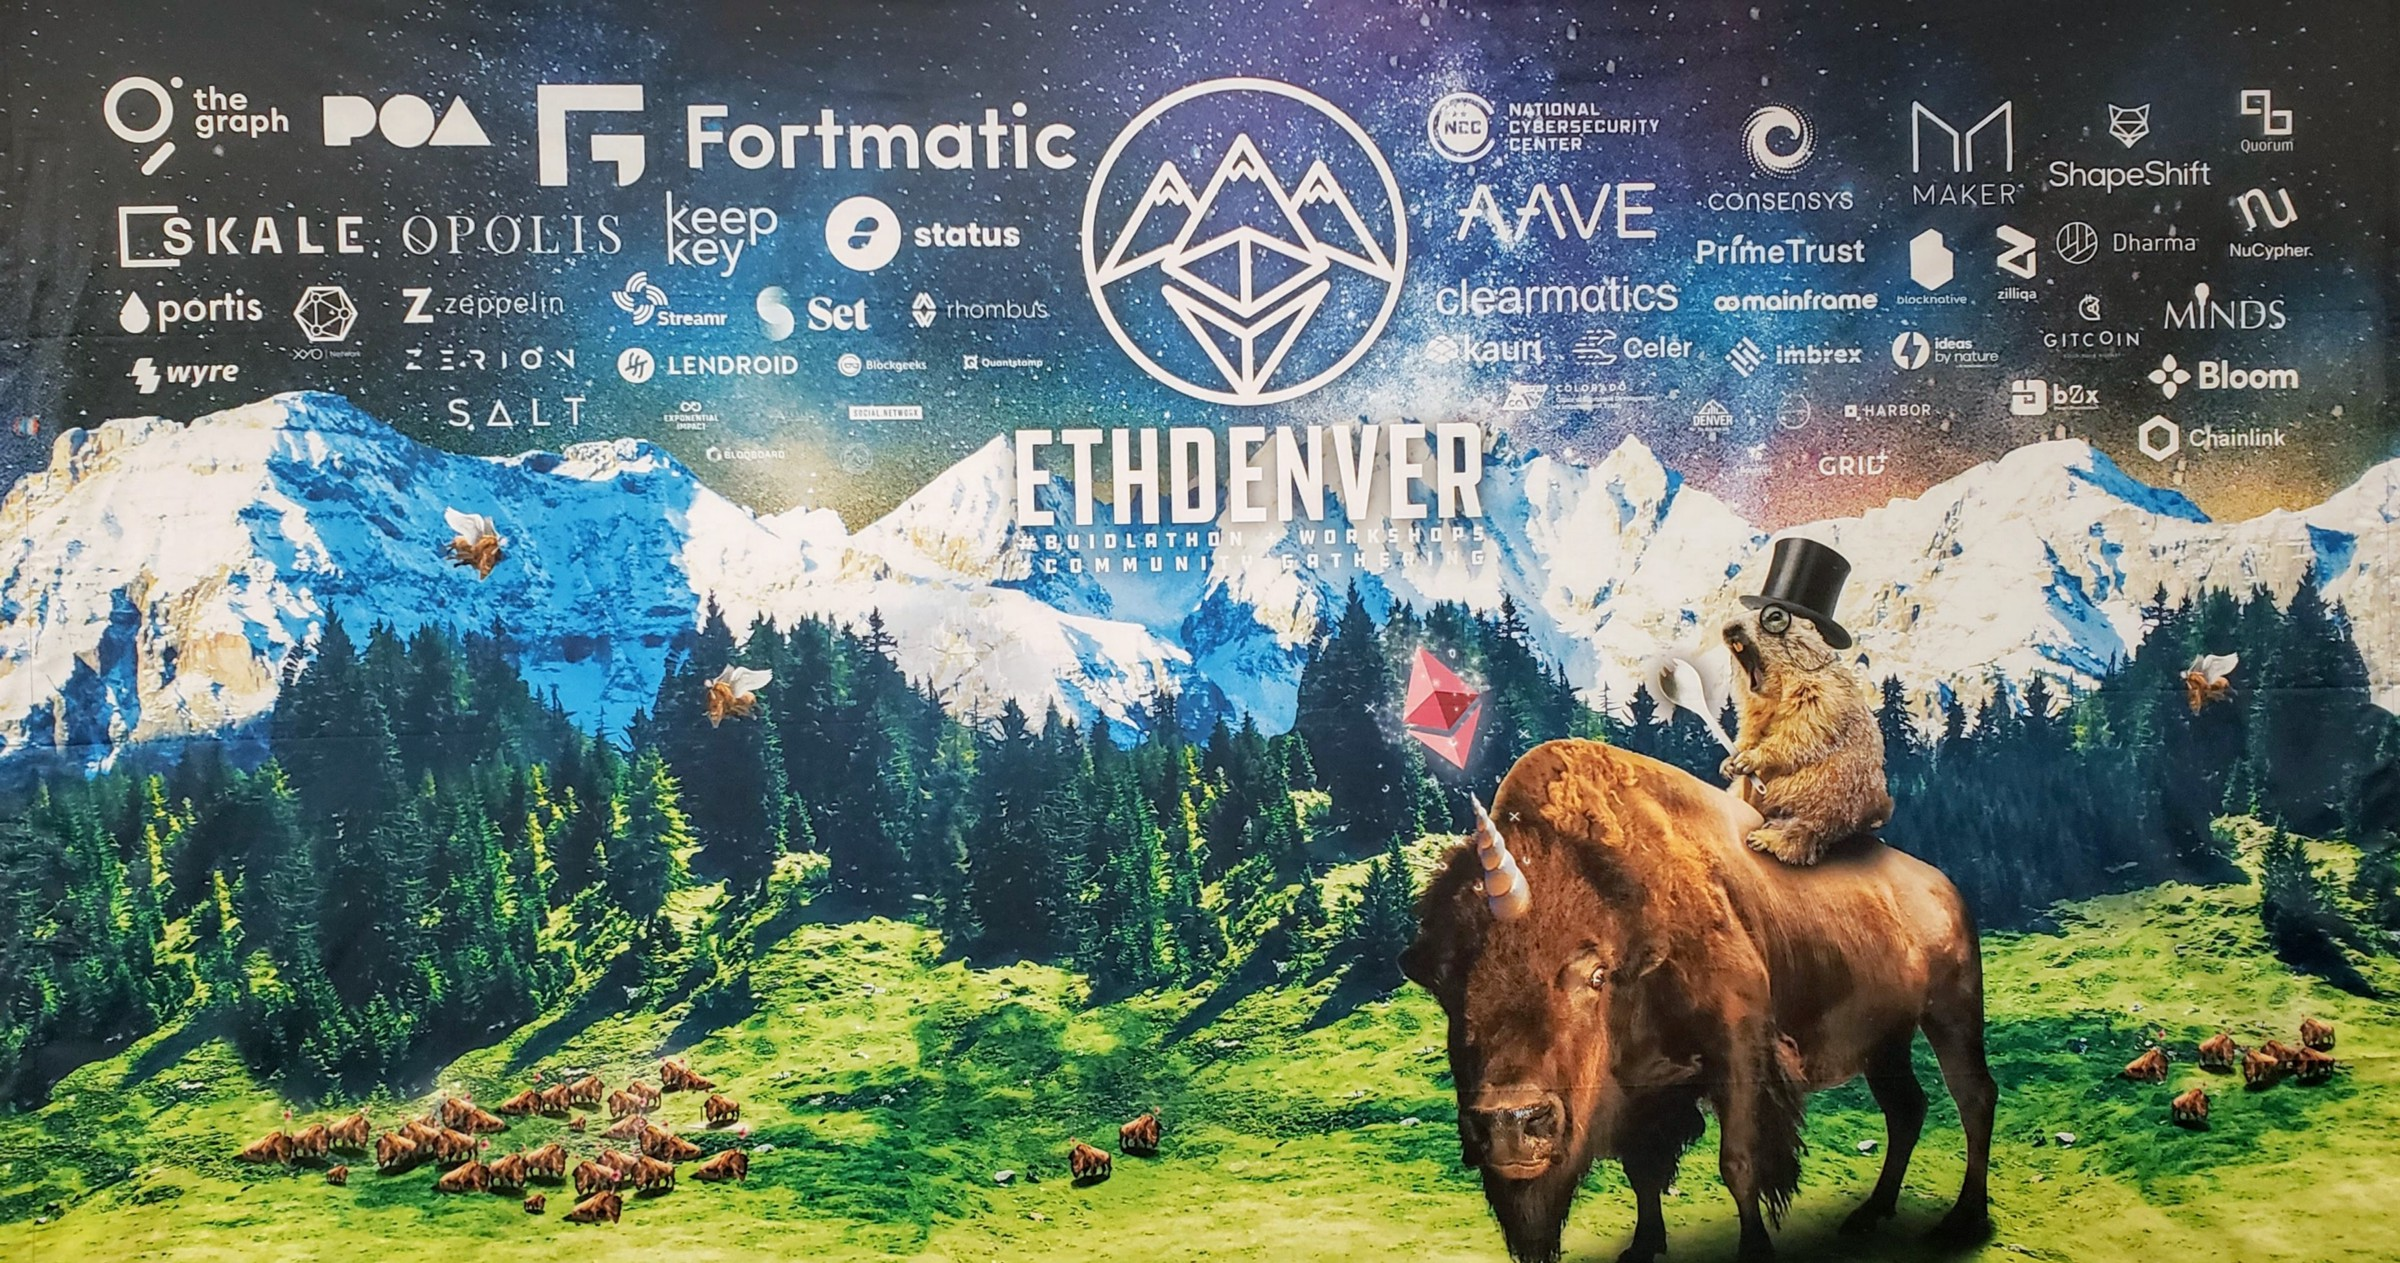 /7-tips-hackathons-can-pick-up-from-ethdenver-2bc0acf4708f feature image